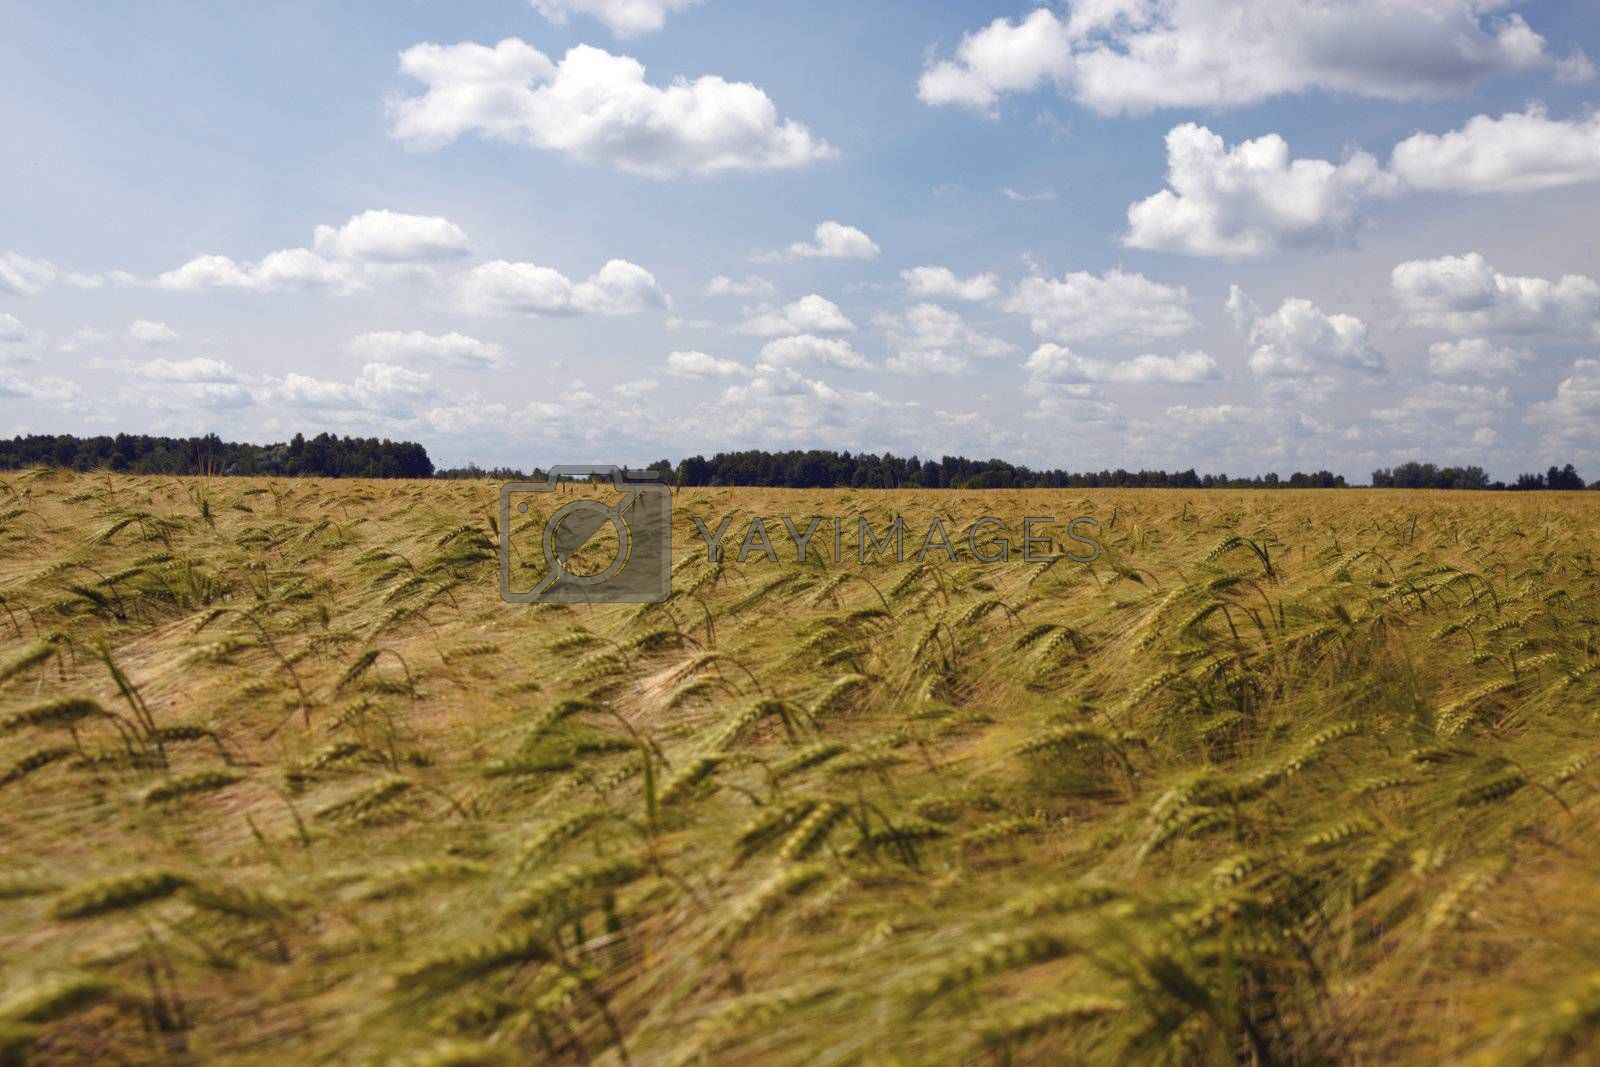 Barley Field, photographed at sunny day in Lithuania